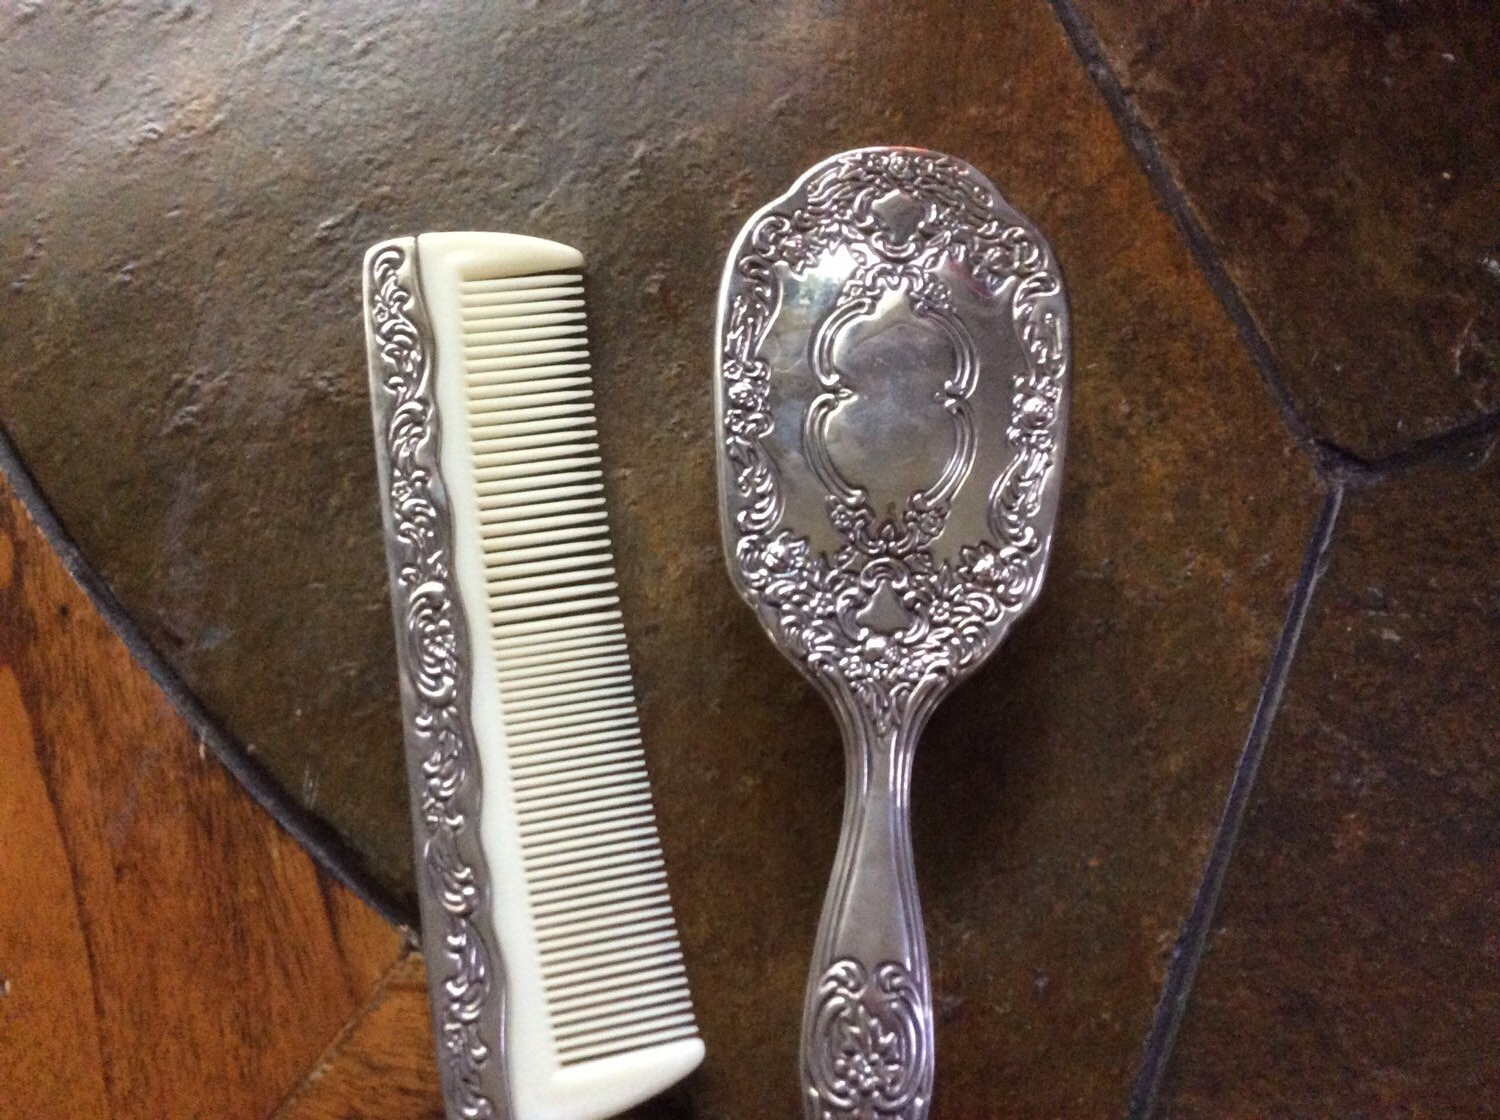 Silver Tone Brush And Comb Set Vanity Set Vintage Brush Comb